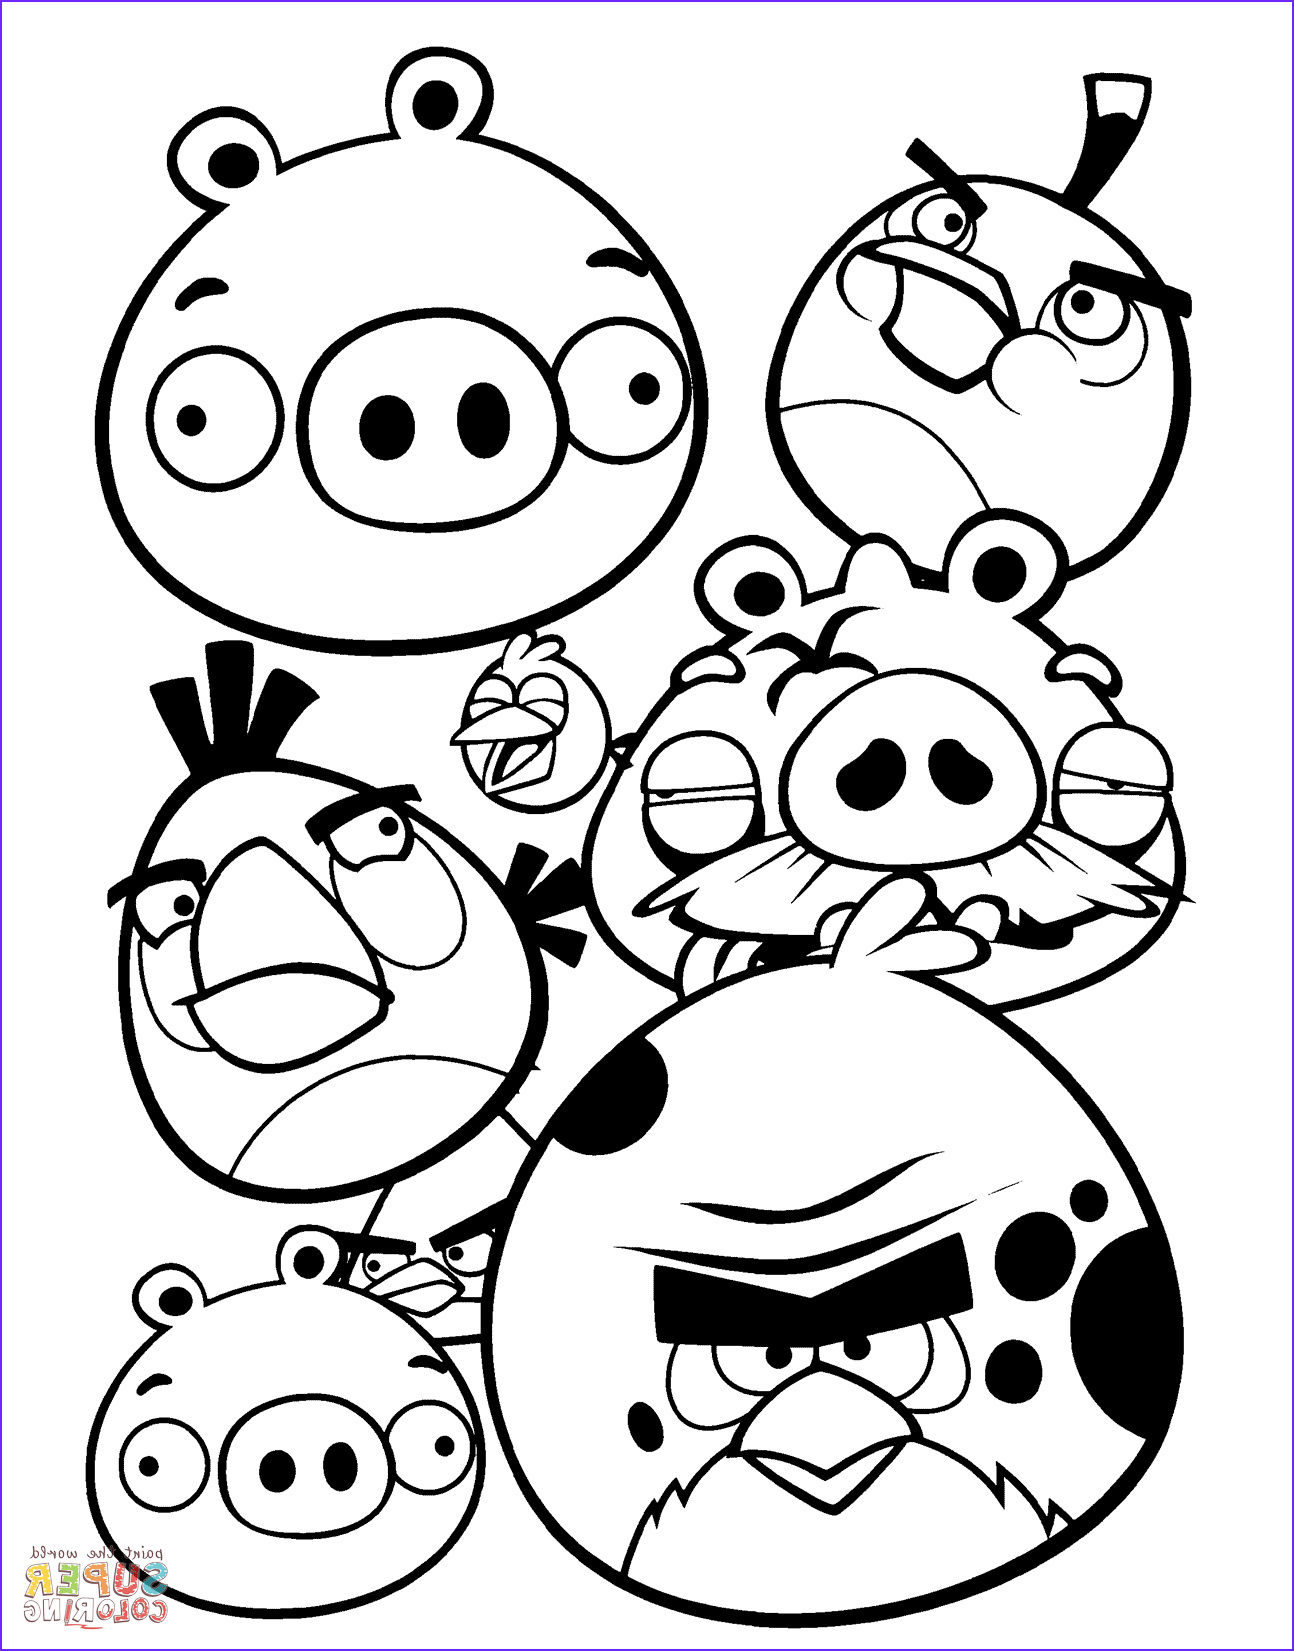 Anger Coloring Pages Beautiful Stock 15 Best Printable Angry Birds Colouring Pages for Kids